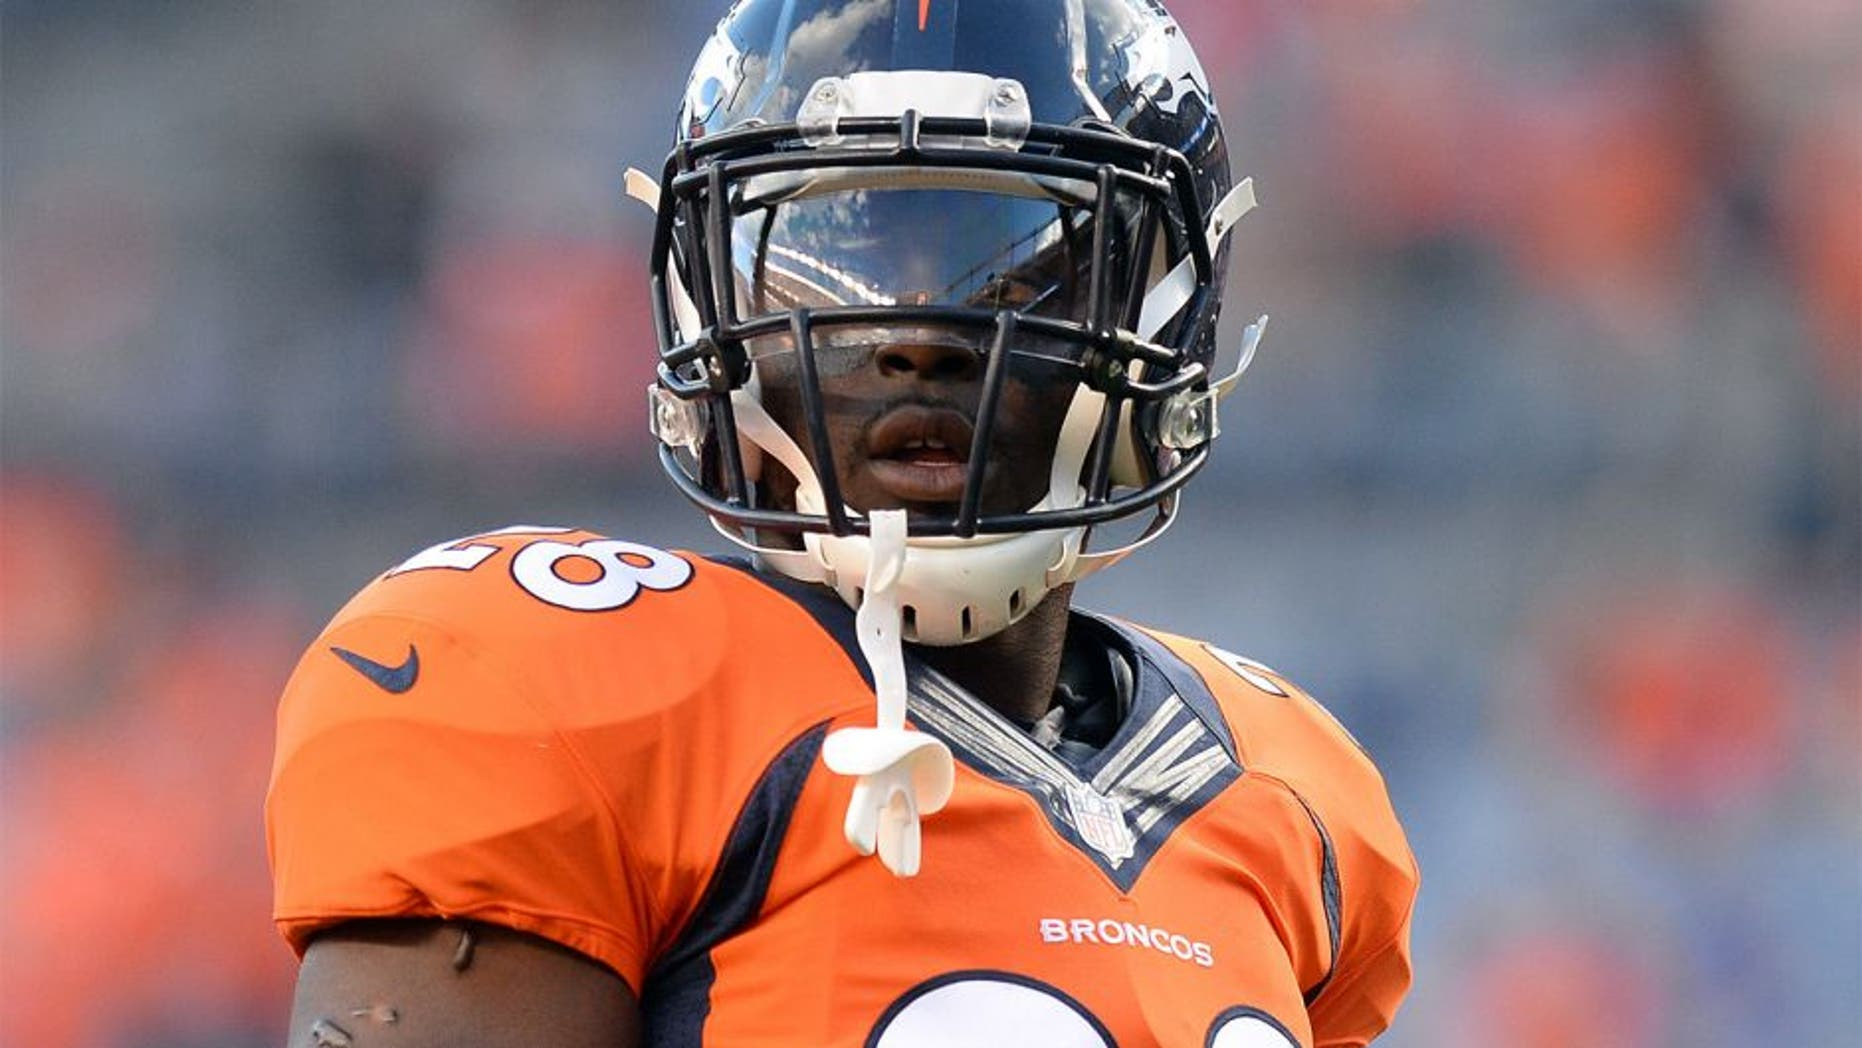 Aug 23, 2014; Denver, CO, USA; Denver Broncos running back Montee Ball (28) before the start of a preseason game against the Houston Texans at Sports Authority Field at Mile High. Mandatory Credit: Ron Chenoy-USA TODAY Sports